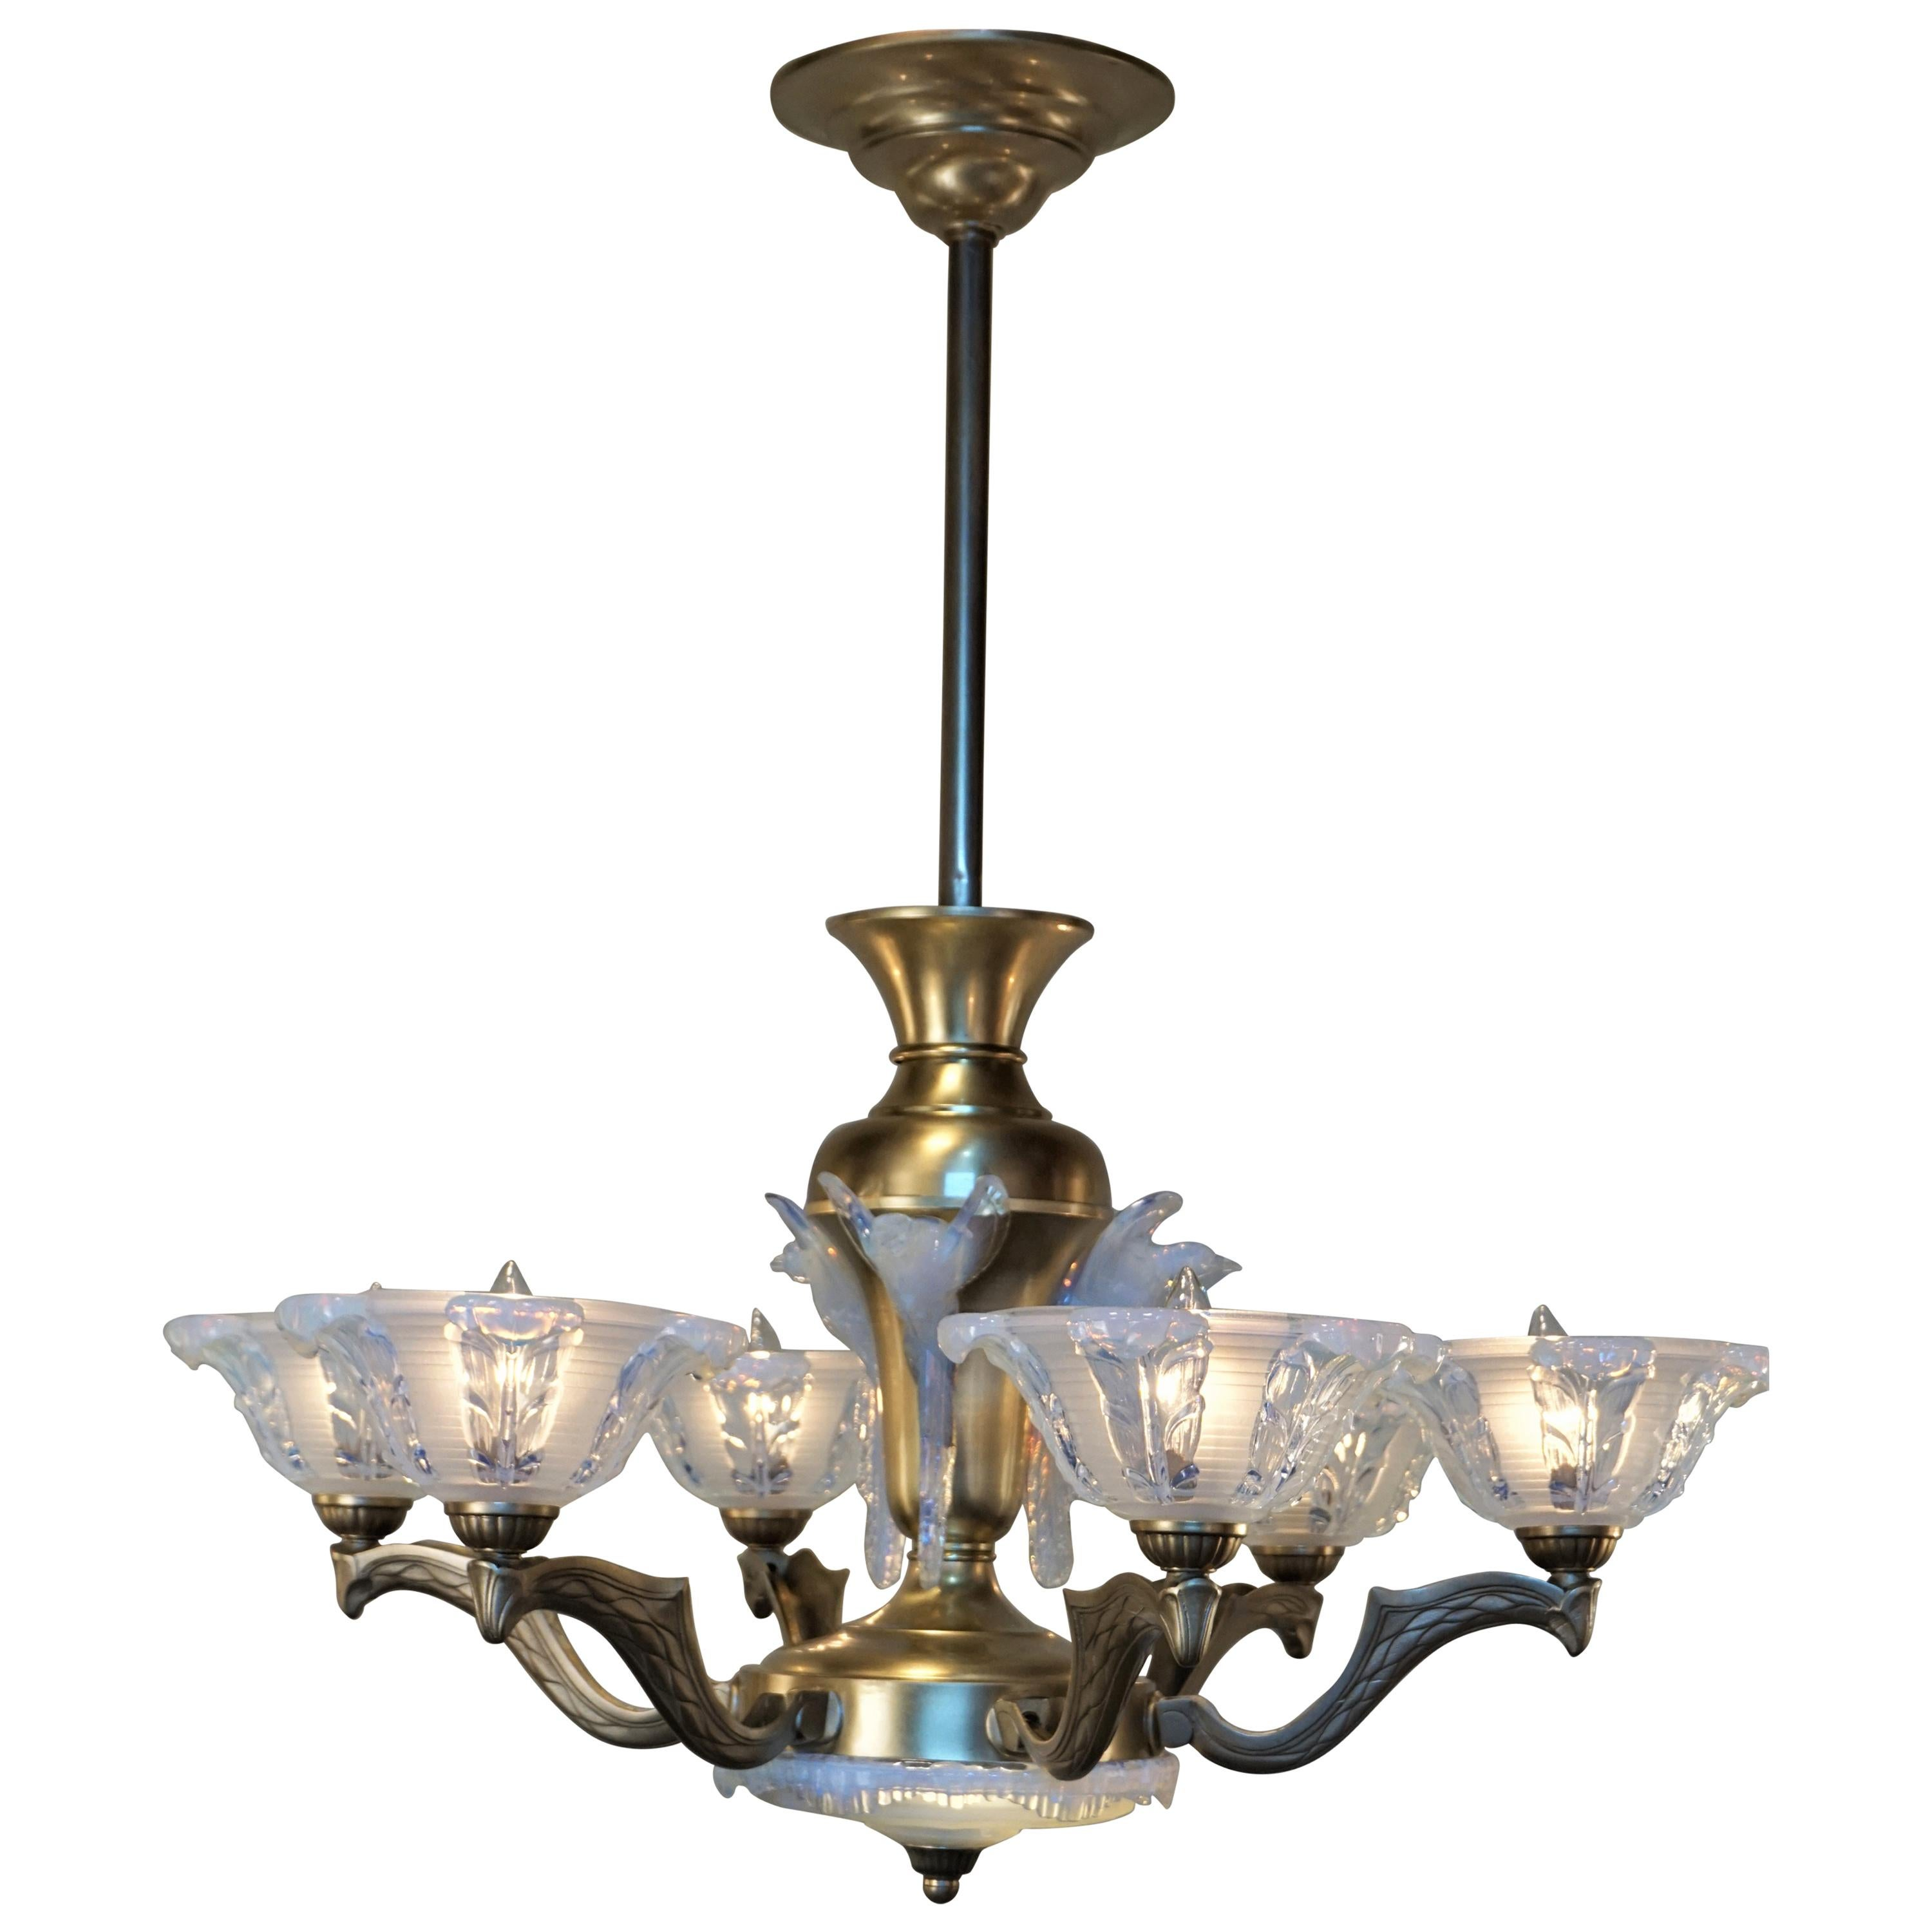 French Art Deco Opalescent Glass Chandelier by